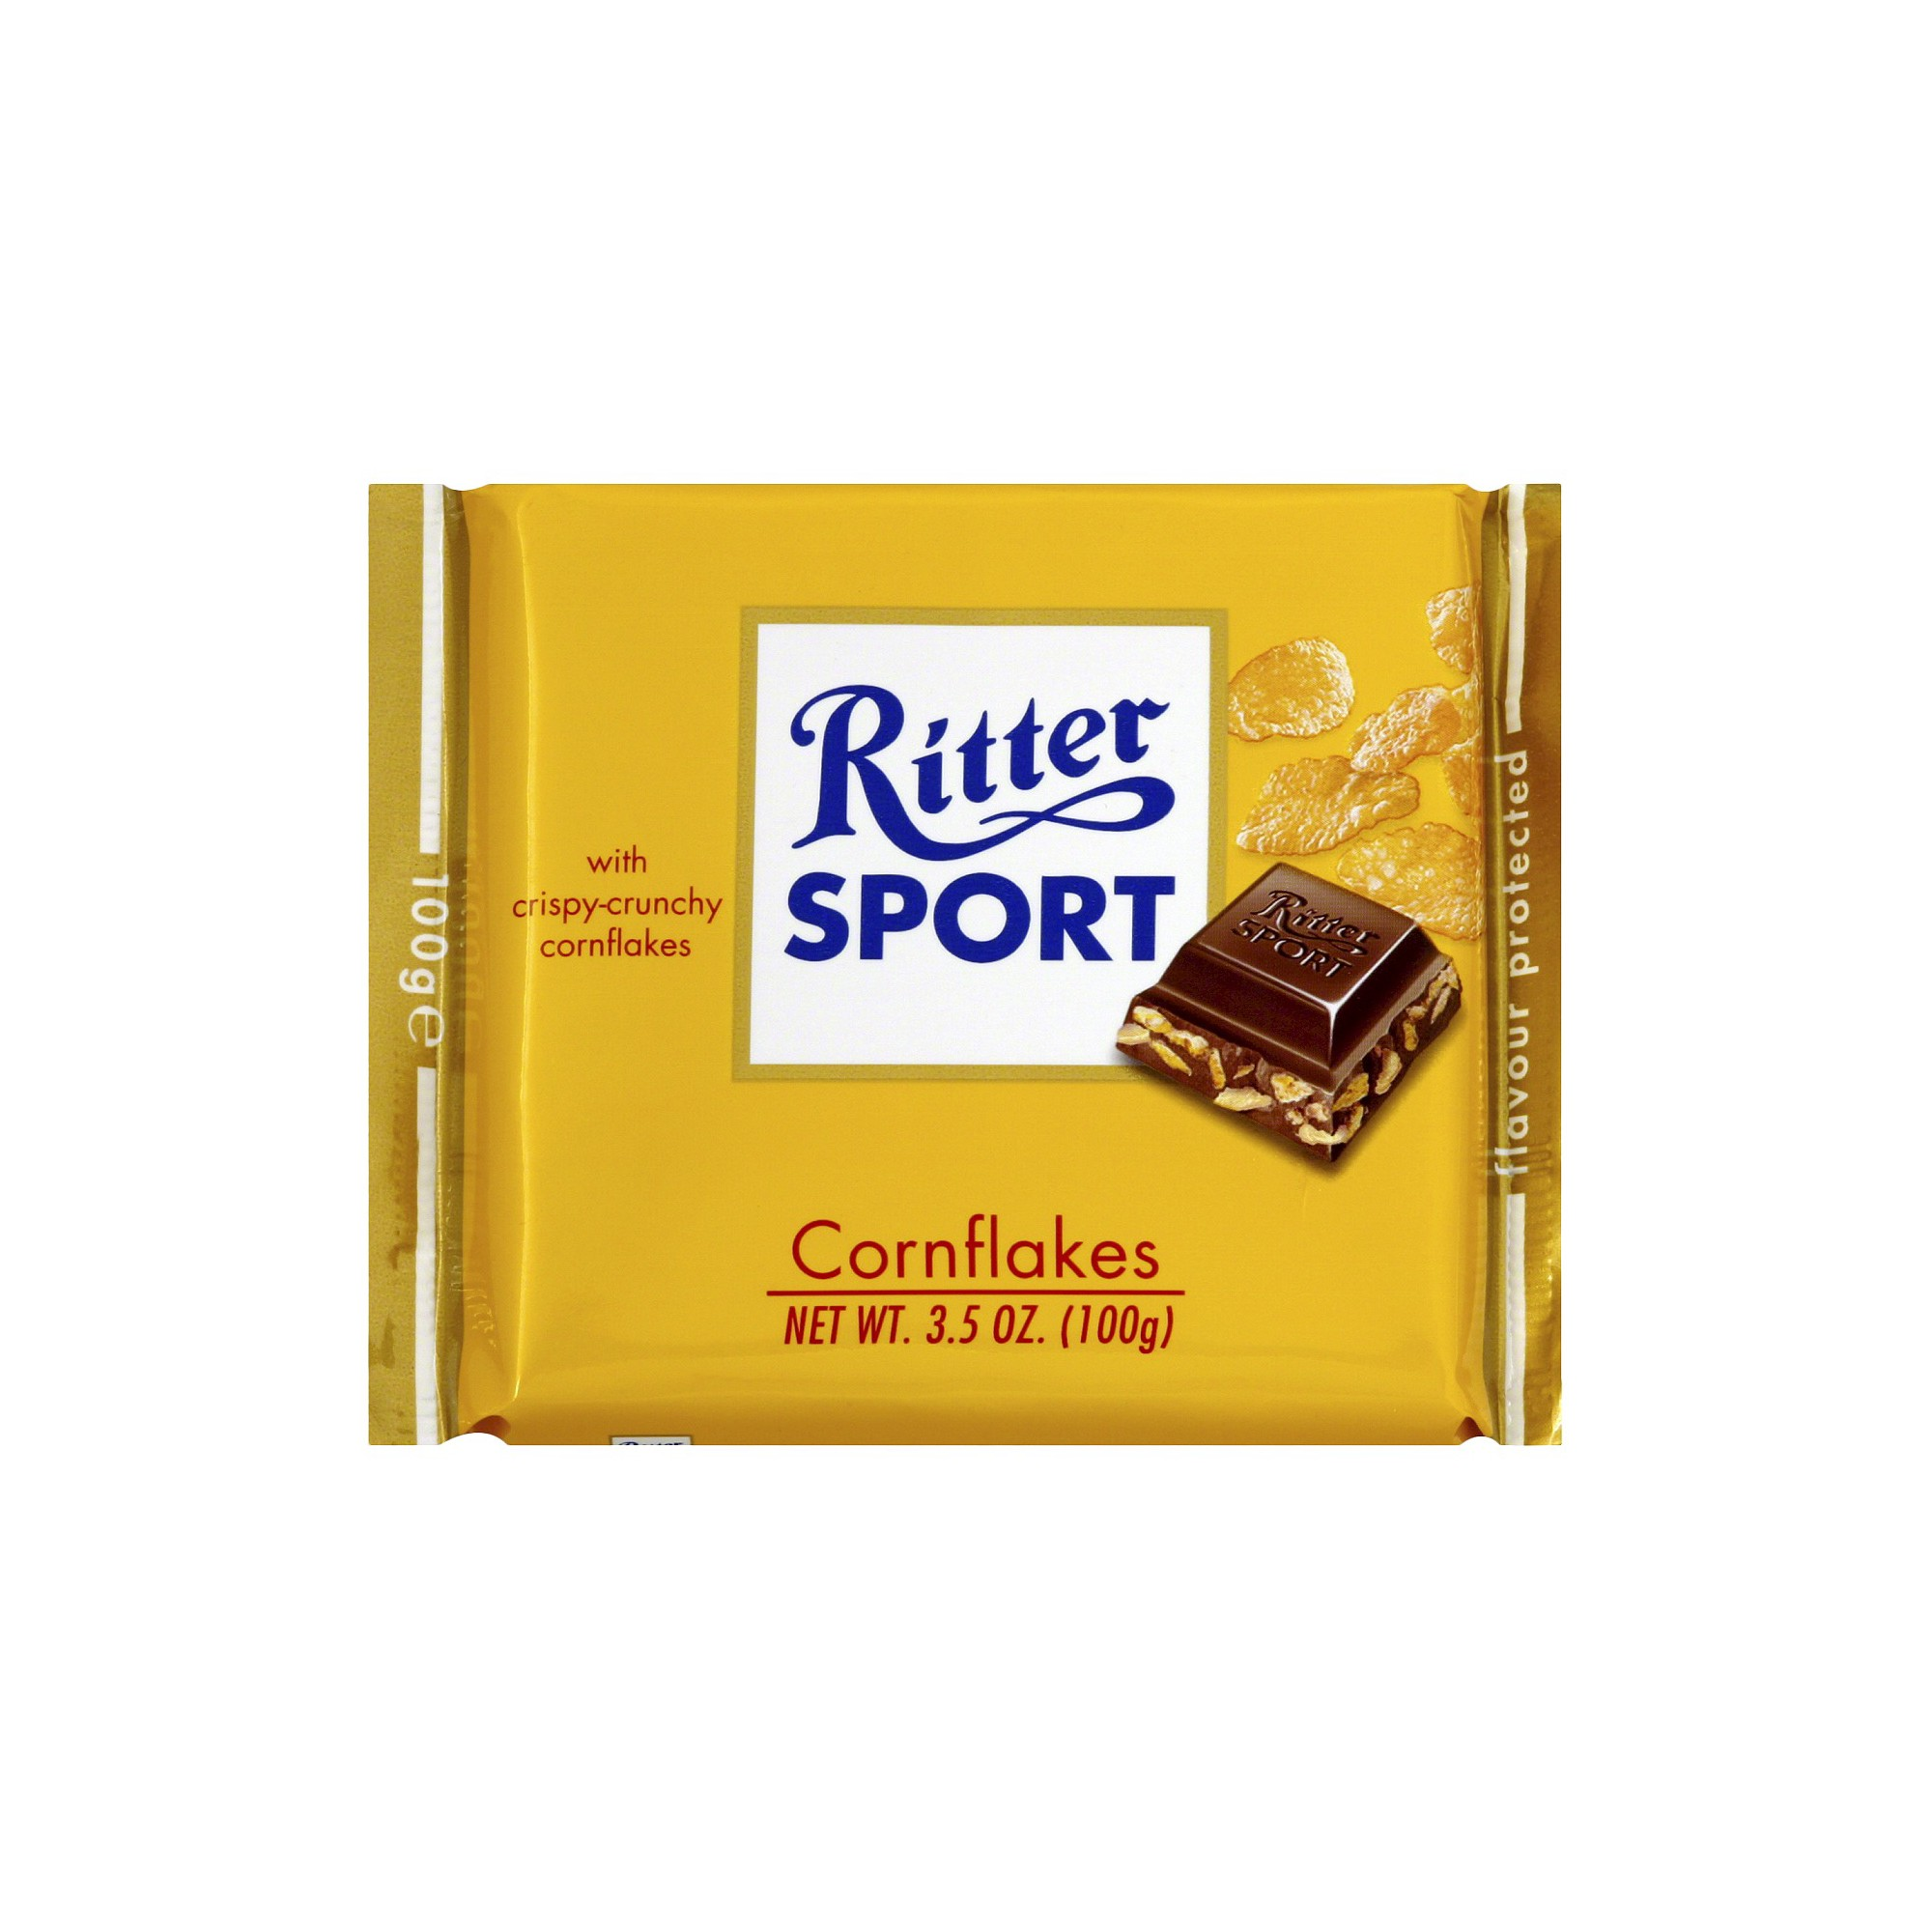 Ritter Sport Milk Chocolate with Cornflakes Candy Bar 3